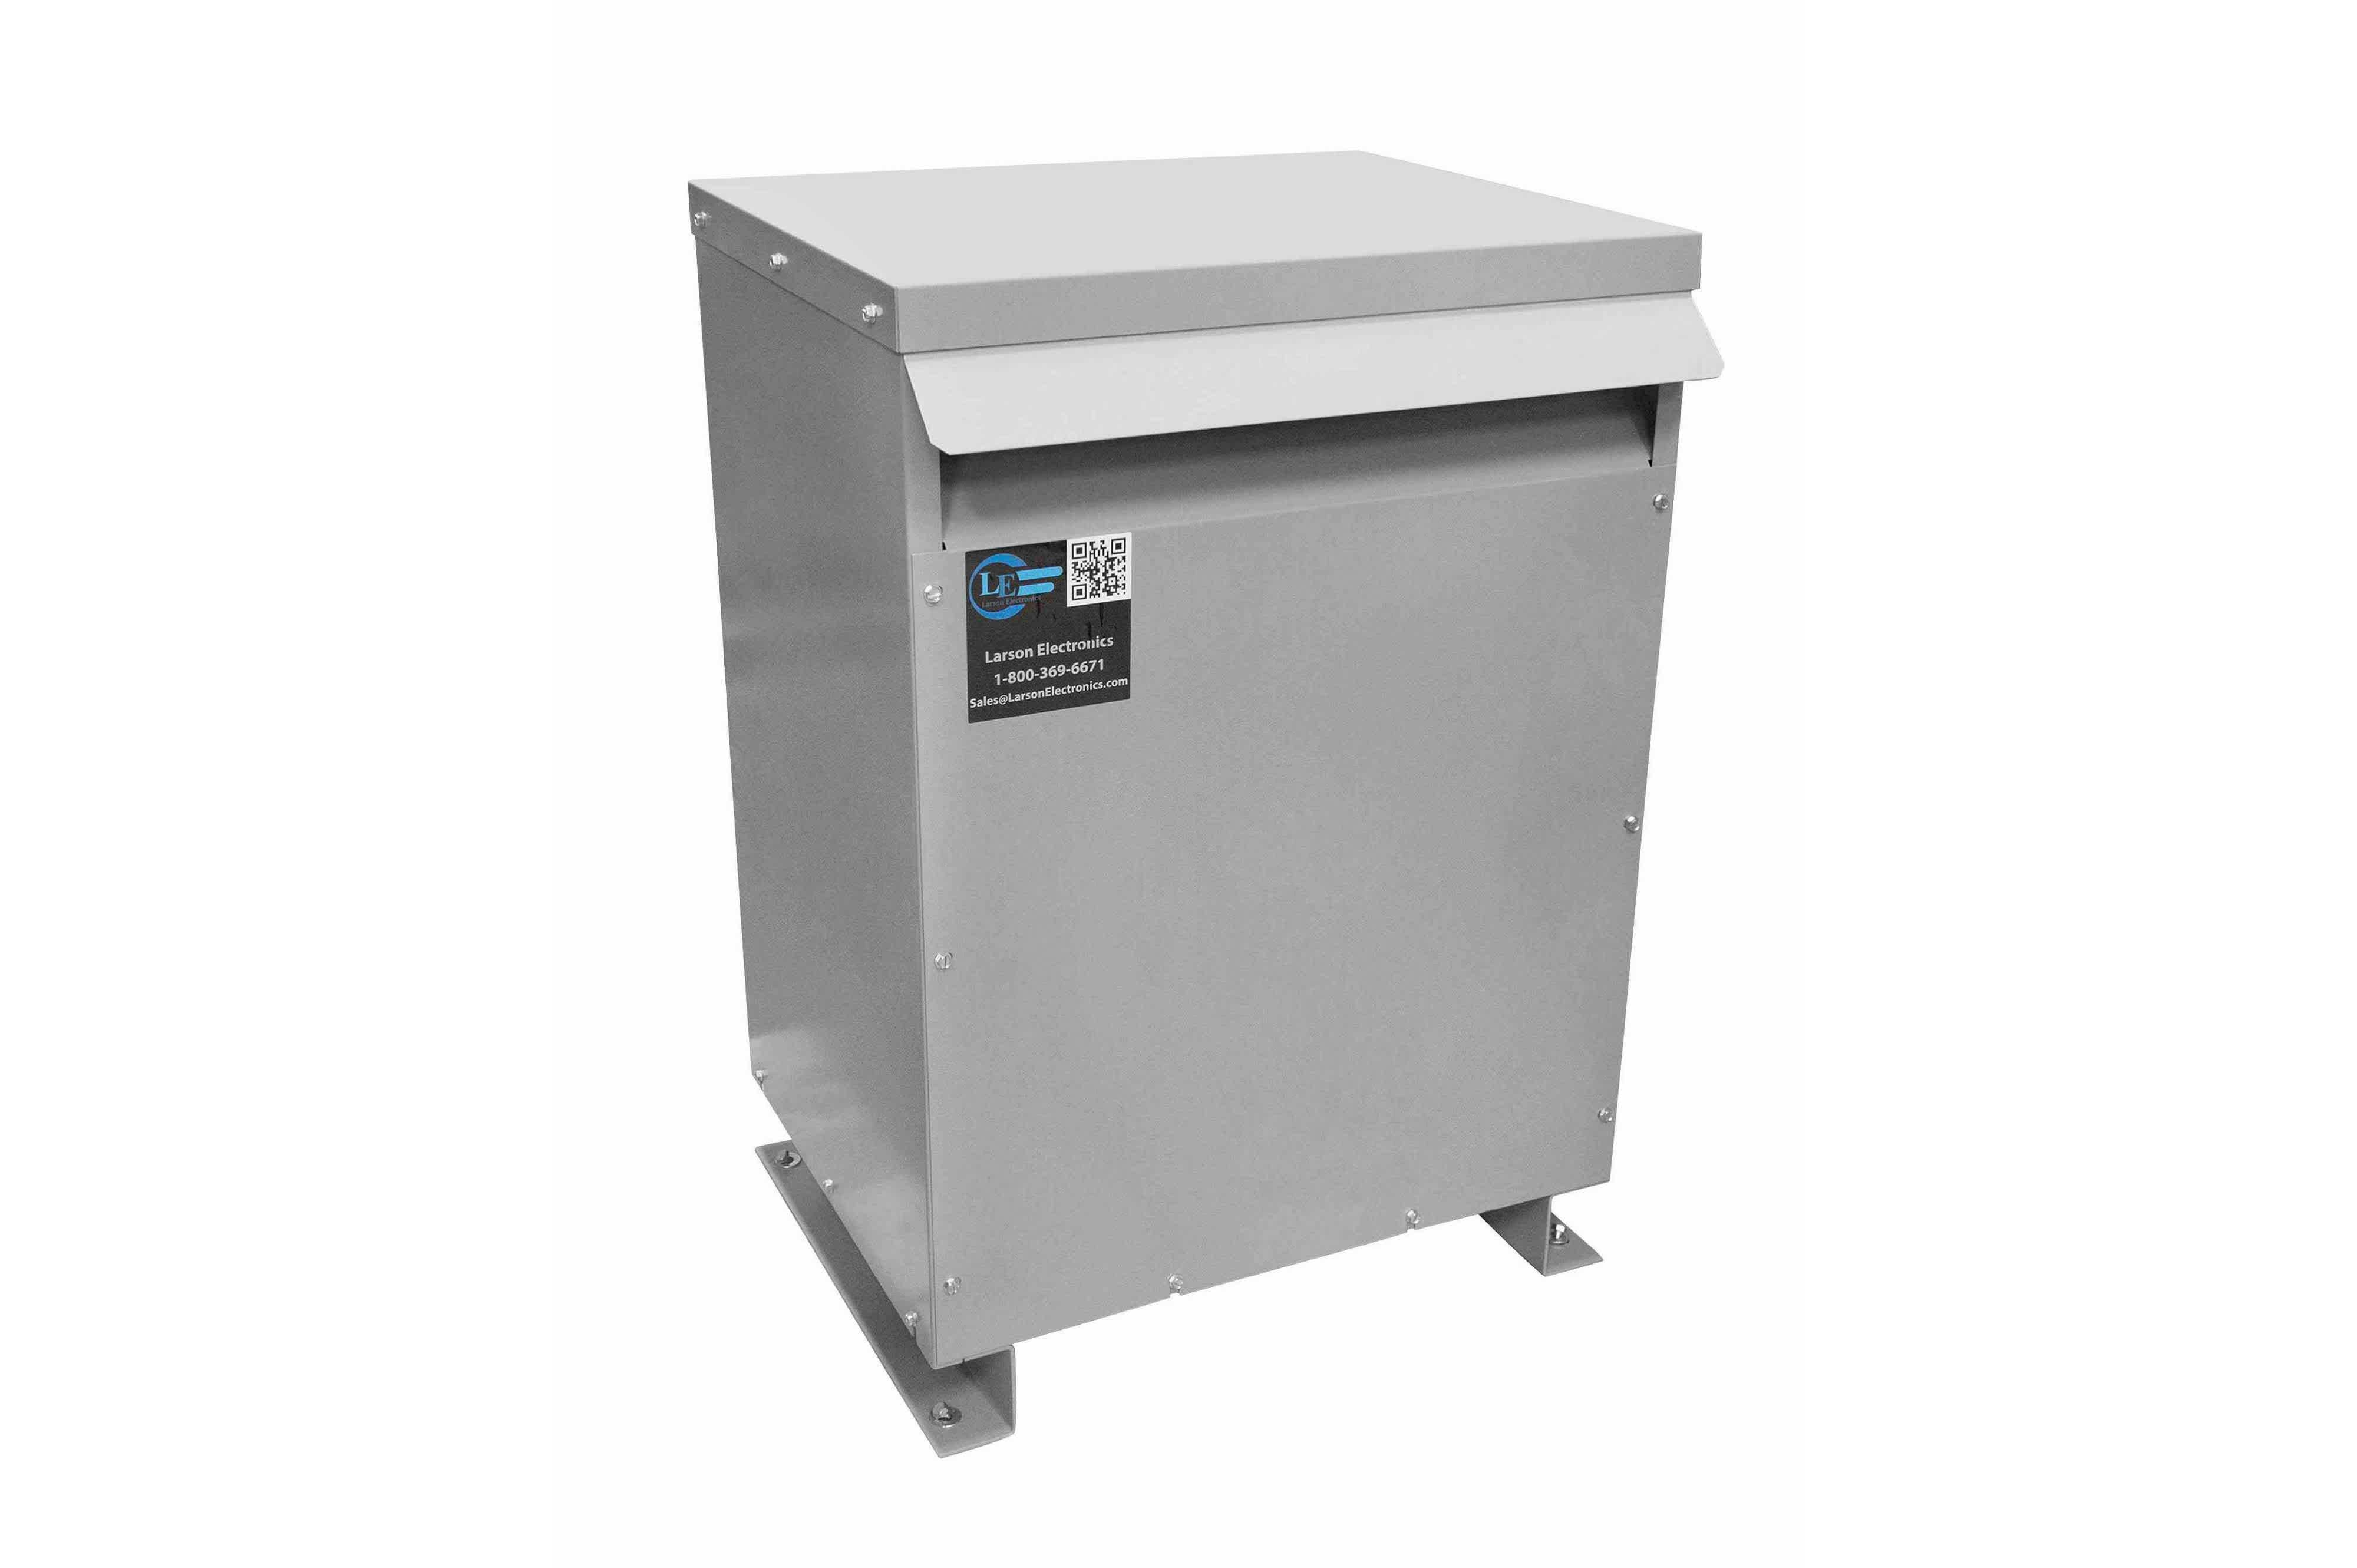 80 kVA 3PH Isolation Transformer, 600V Delta Primary, 415V Delta Secondary, N3R, Ventilated, 60 Hz